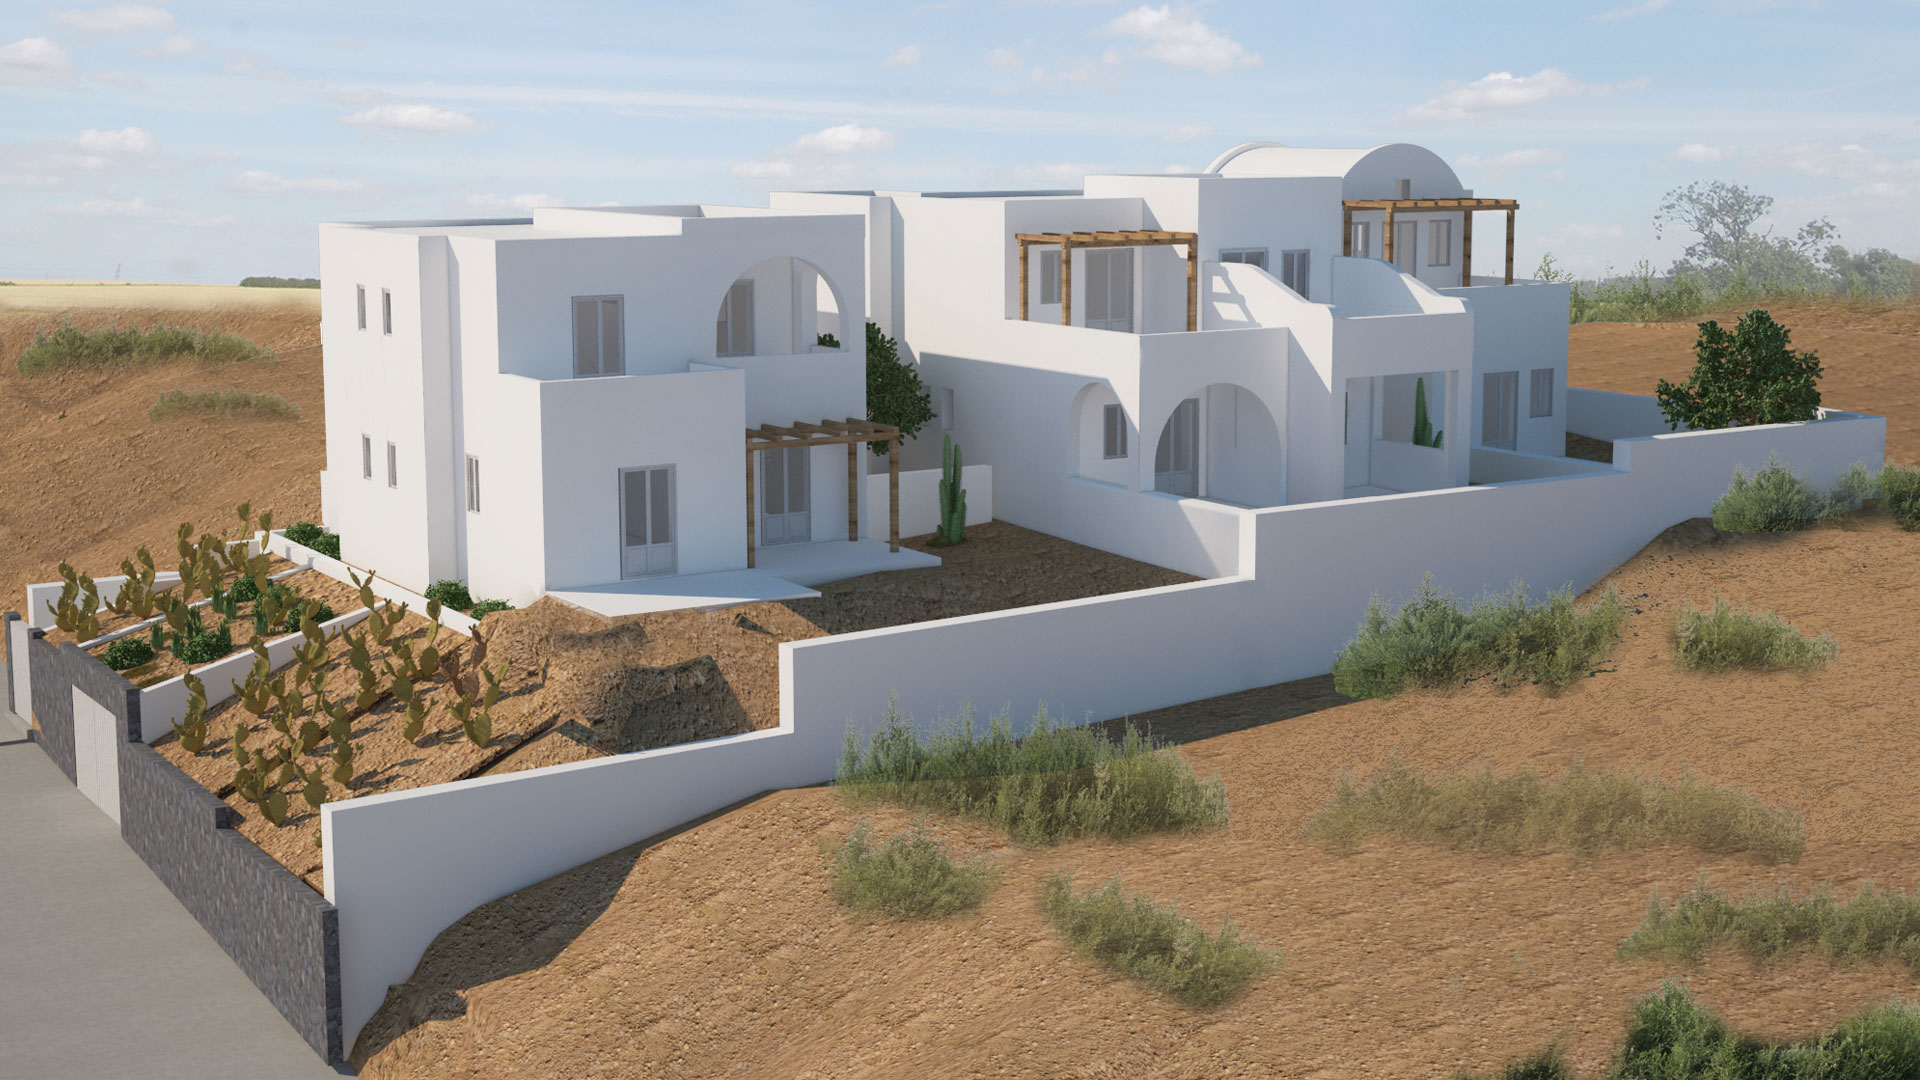 Study & Construction of a Housing Complex, Mesaria, Santorini